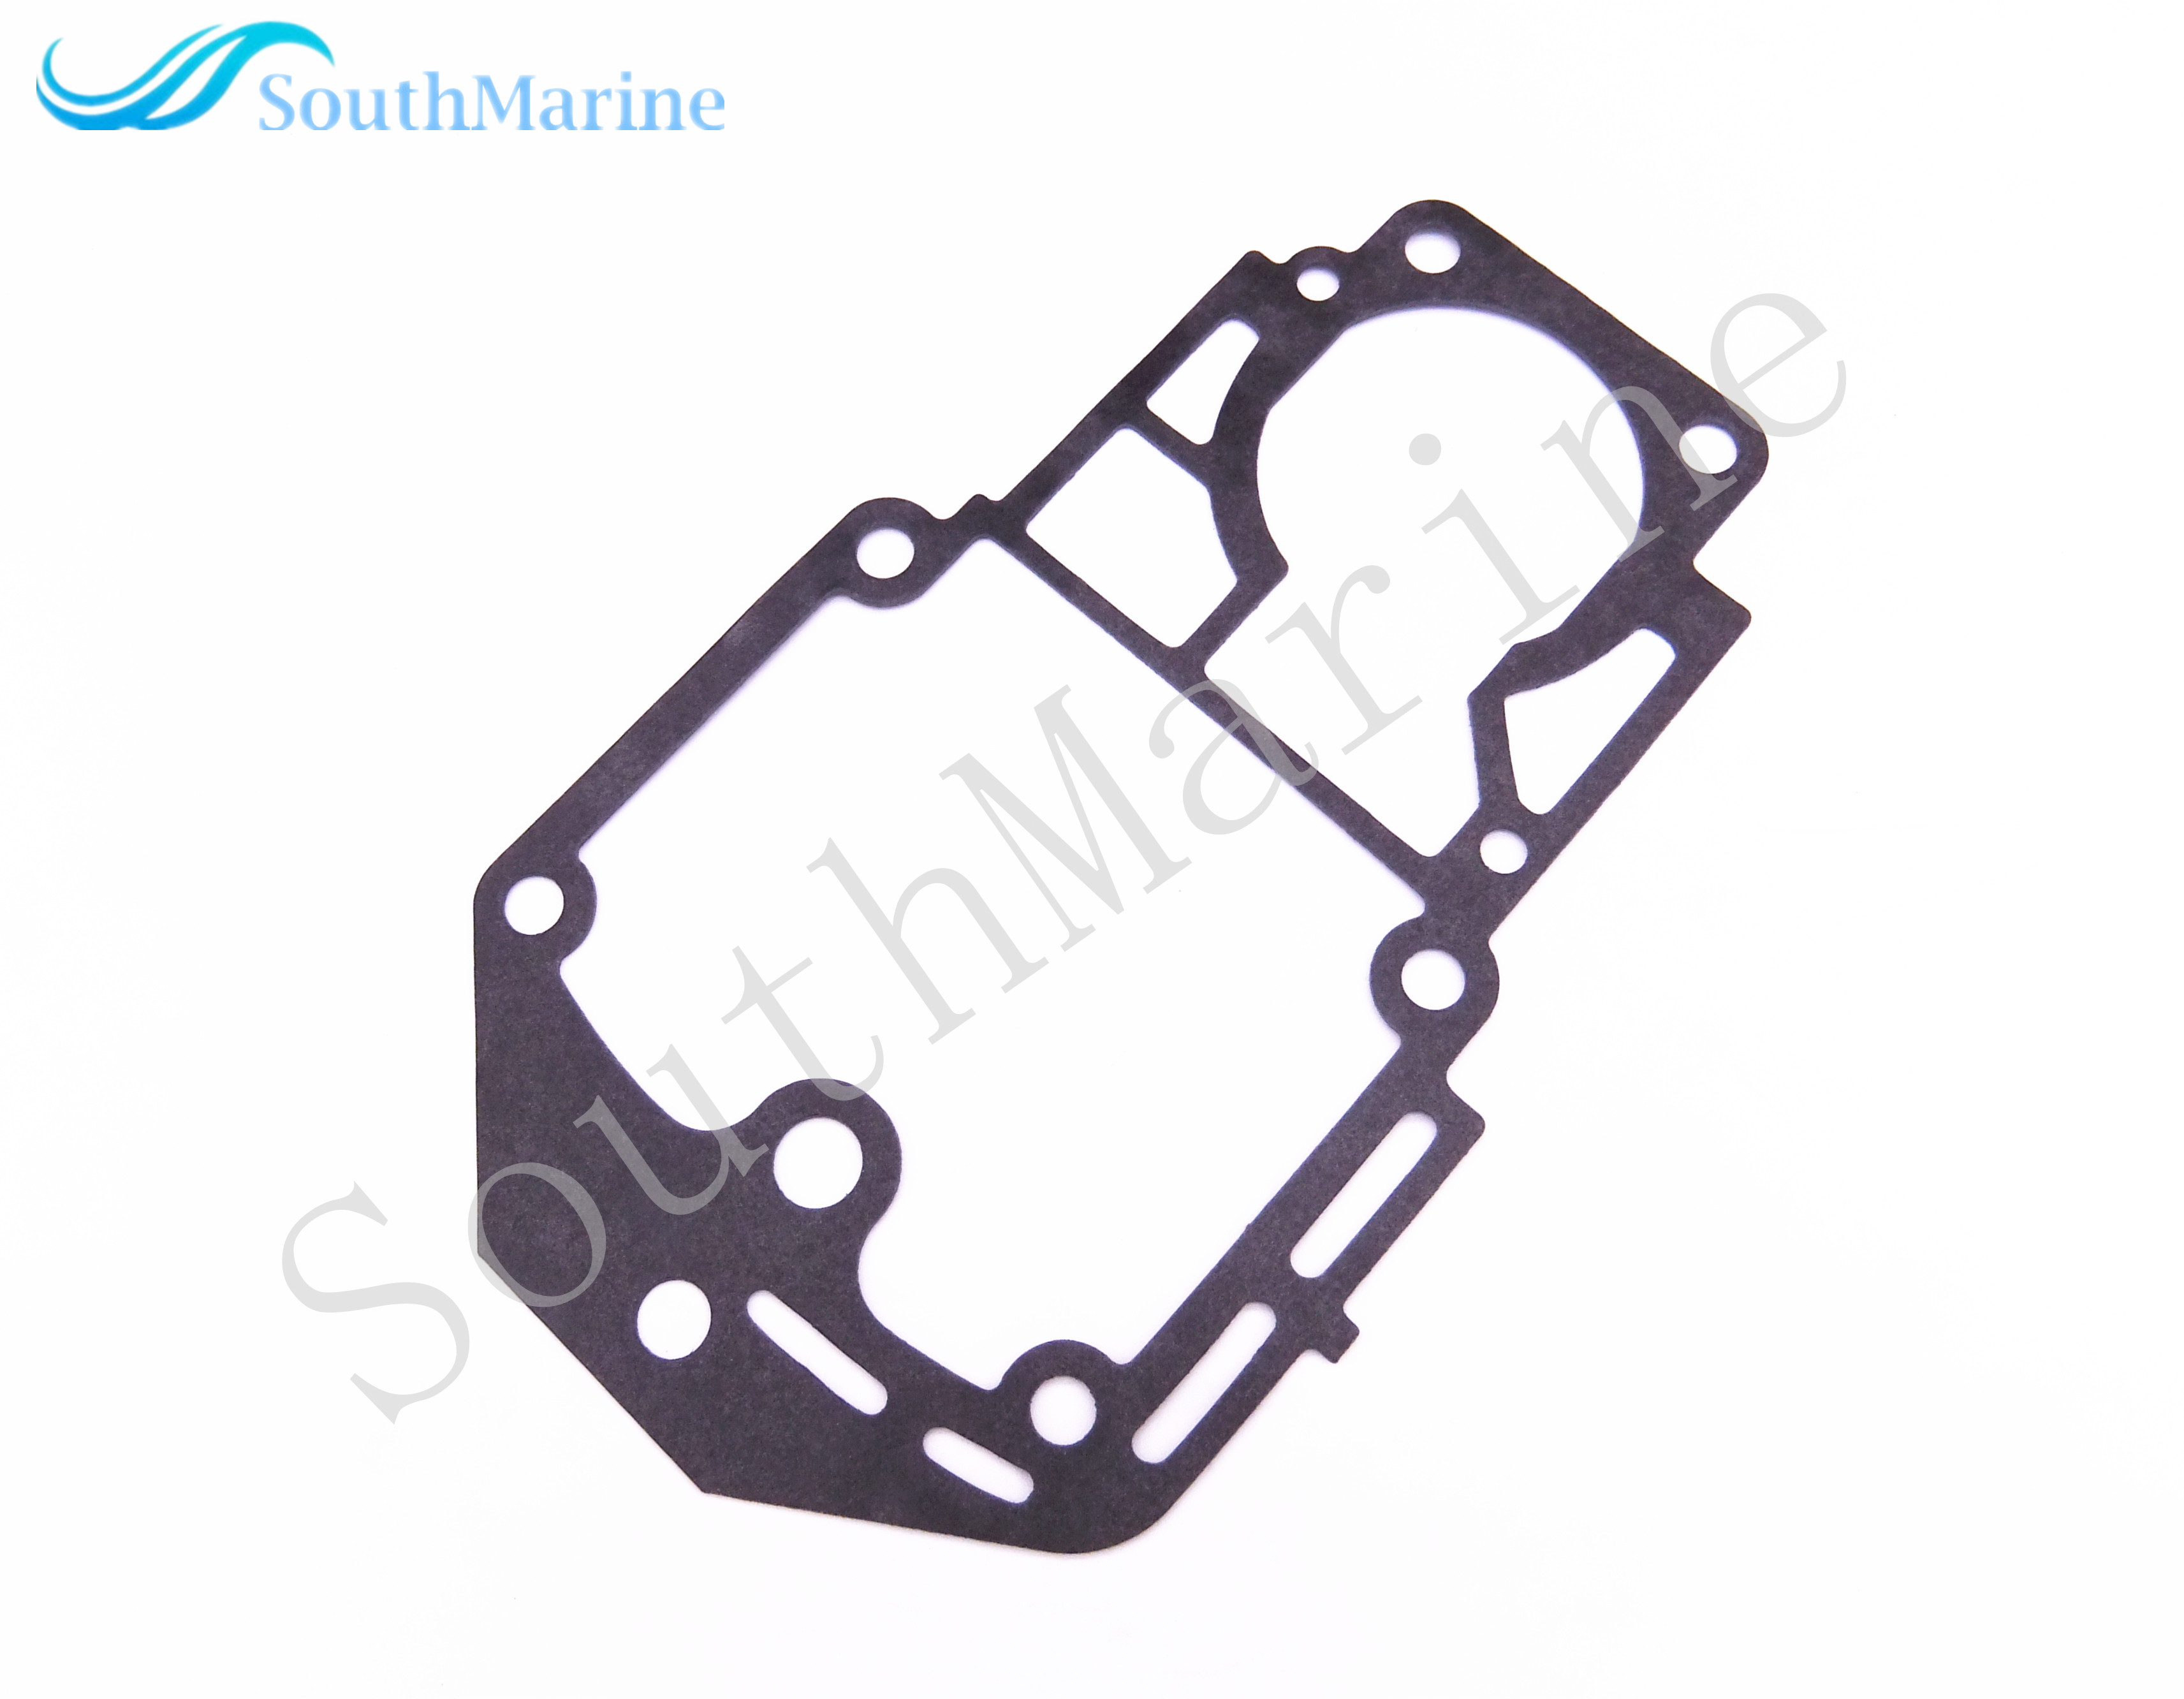 US $10 83 22% OFF|Boat Motor 689 45113 A1 Upper Casing Gasket for Yamaha 2  Stroke 25HP 30HP Outboard Engine-in Boat Engine from Automobiles &